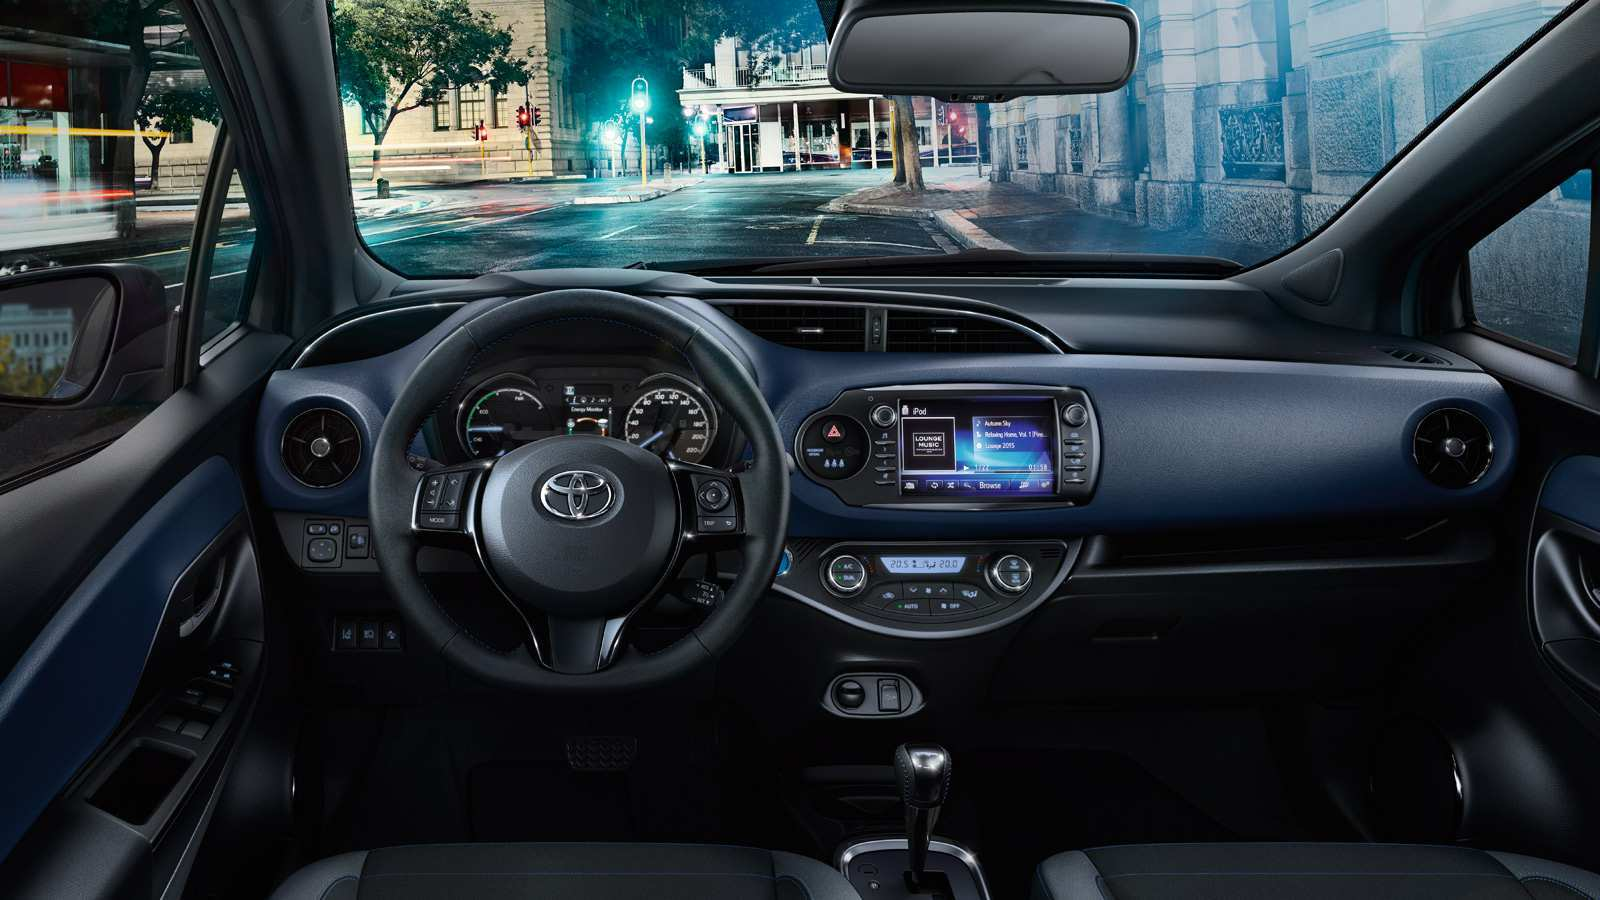 88 All New Toyota Yaris 2019 Interior History